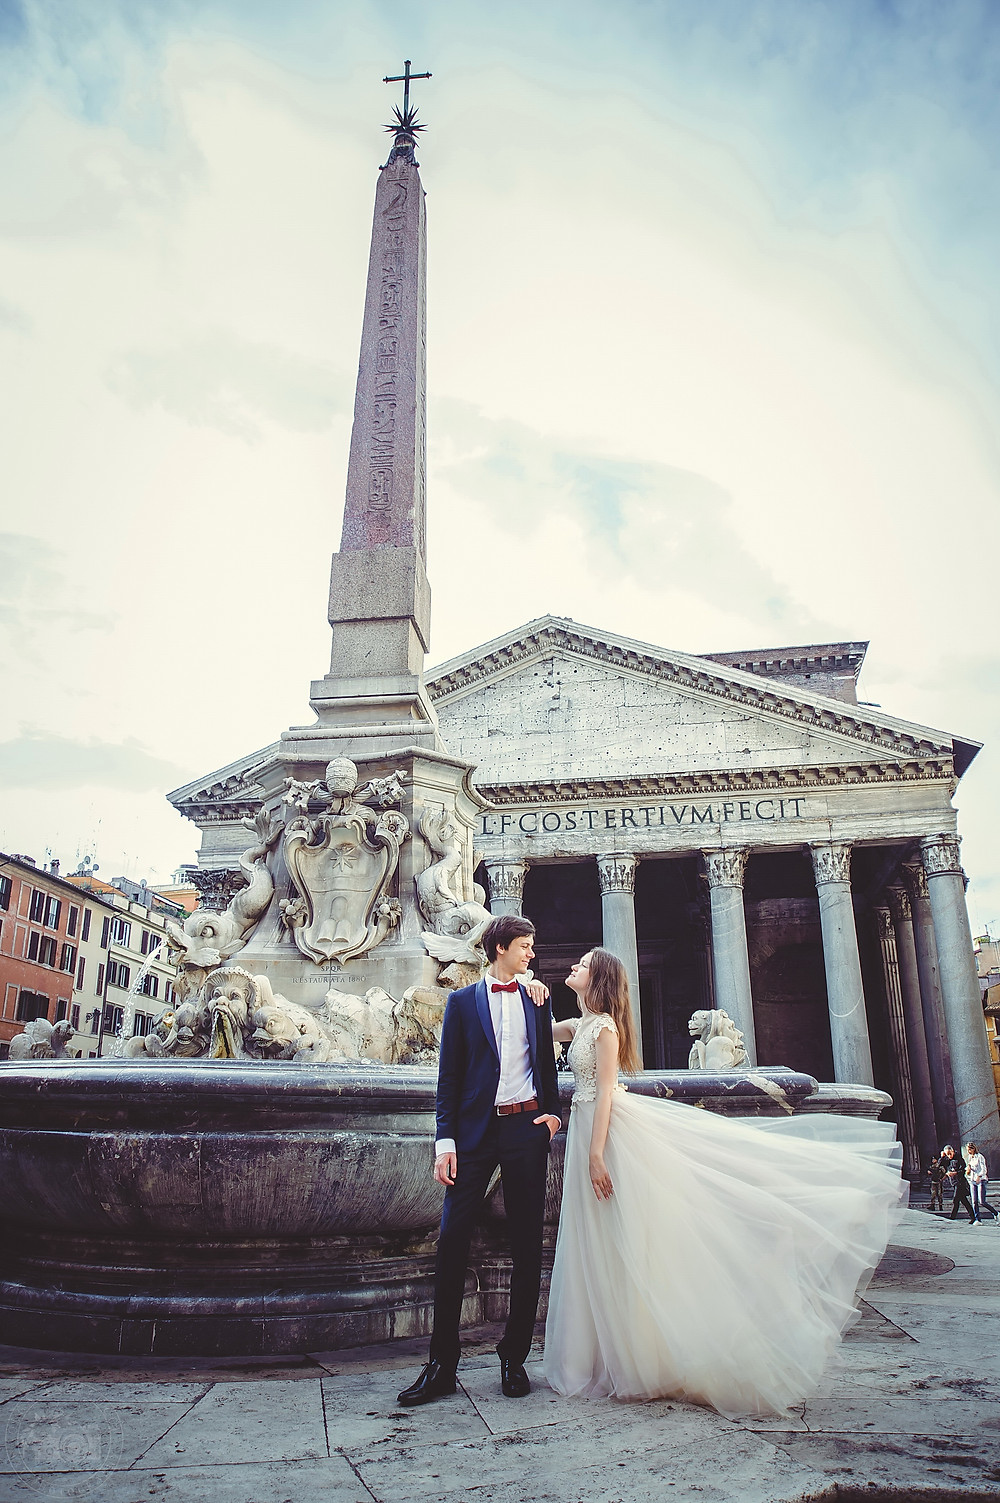 wedding photo shoot in Rome, servizio fotografico matrimonio a Roma, свадебная фотосессия в Риме